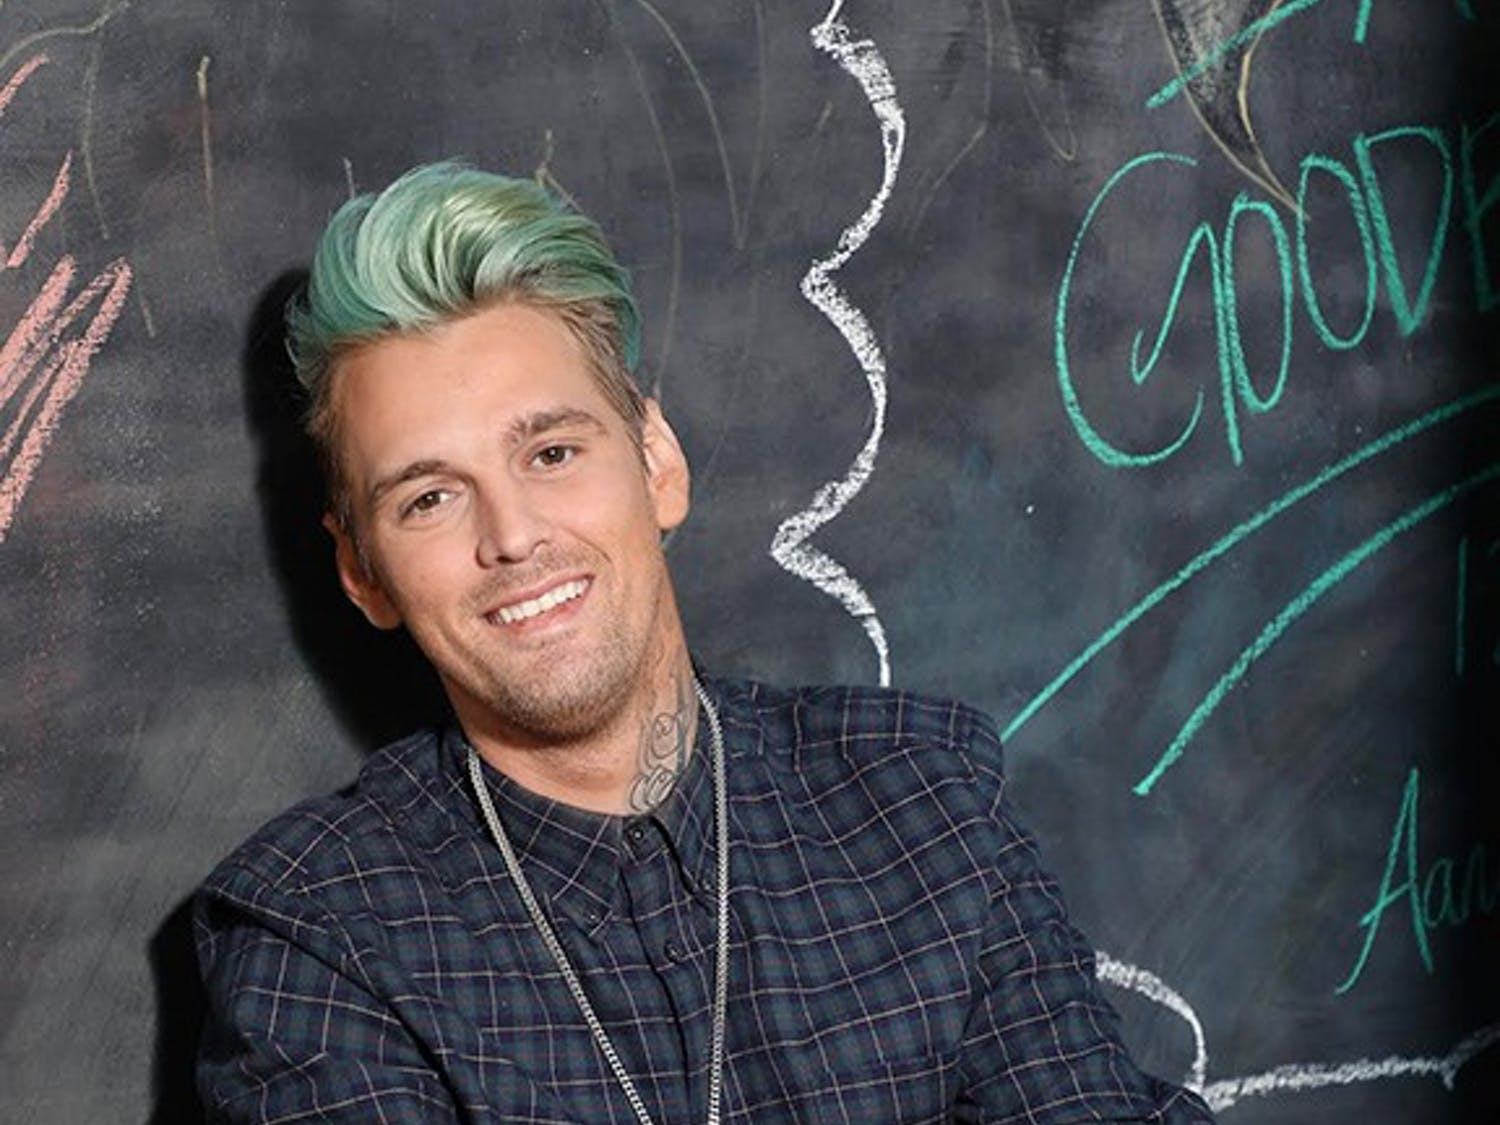 """He's back. Pop star Aaron Carter is set to release """"Love,"""" his first album in 15 years, on Feb. 16. Carter chatted with The Spectrum about the upcoming record, the satisfaction of greater creative control and his March 8 concert in Niagara Falls."""